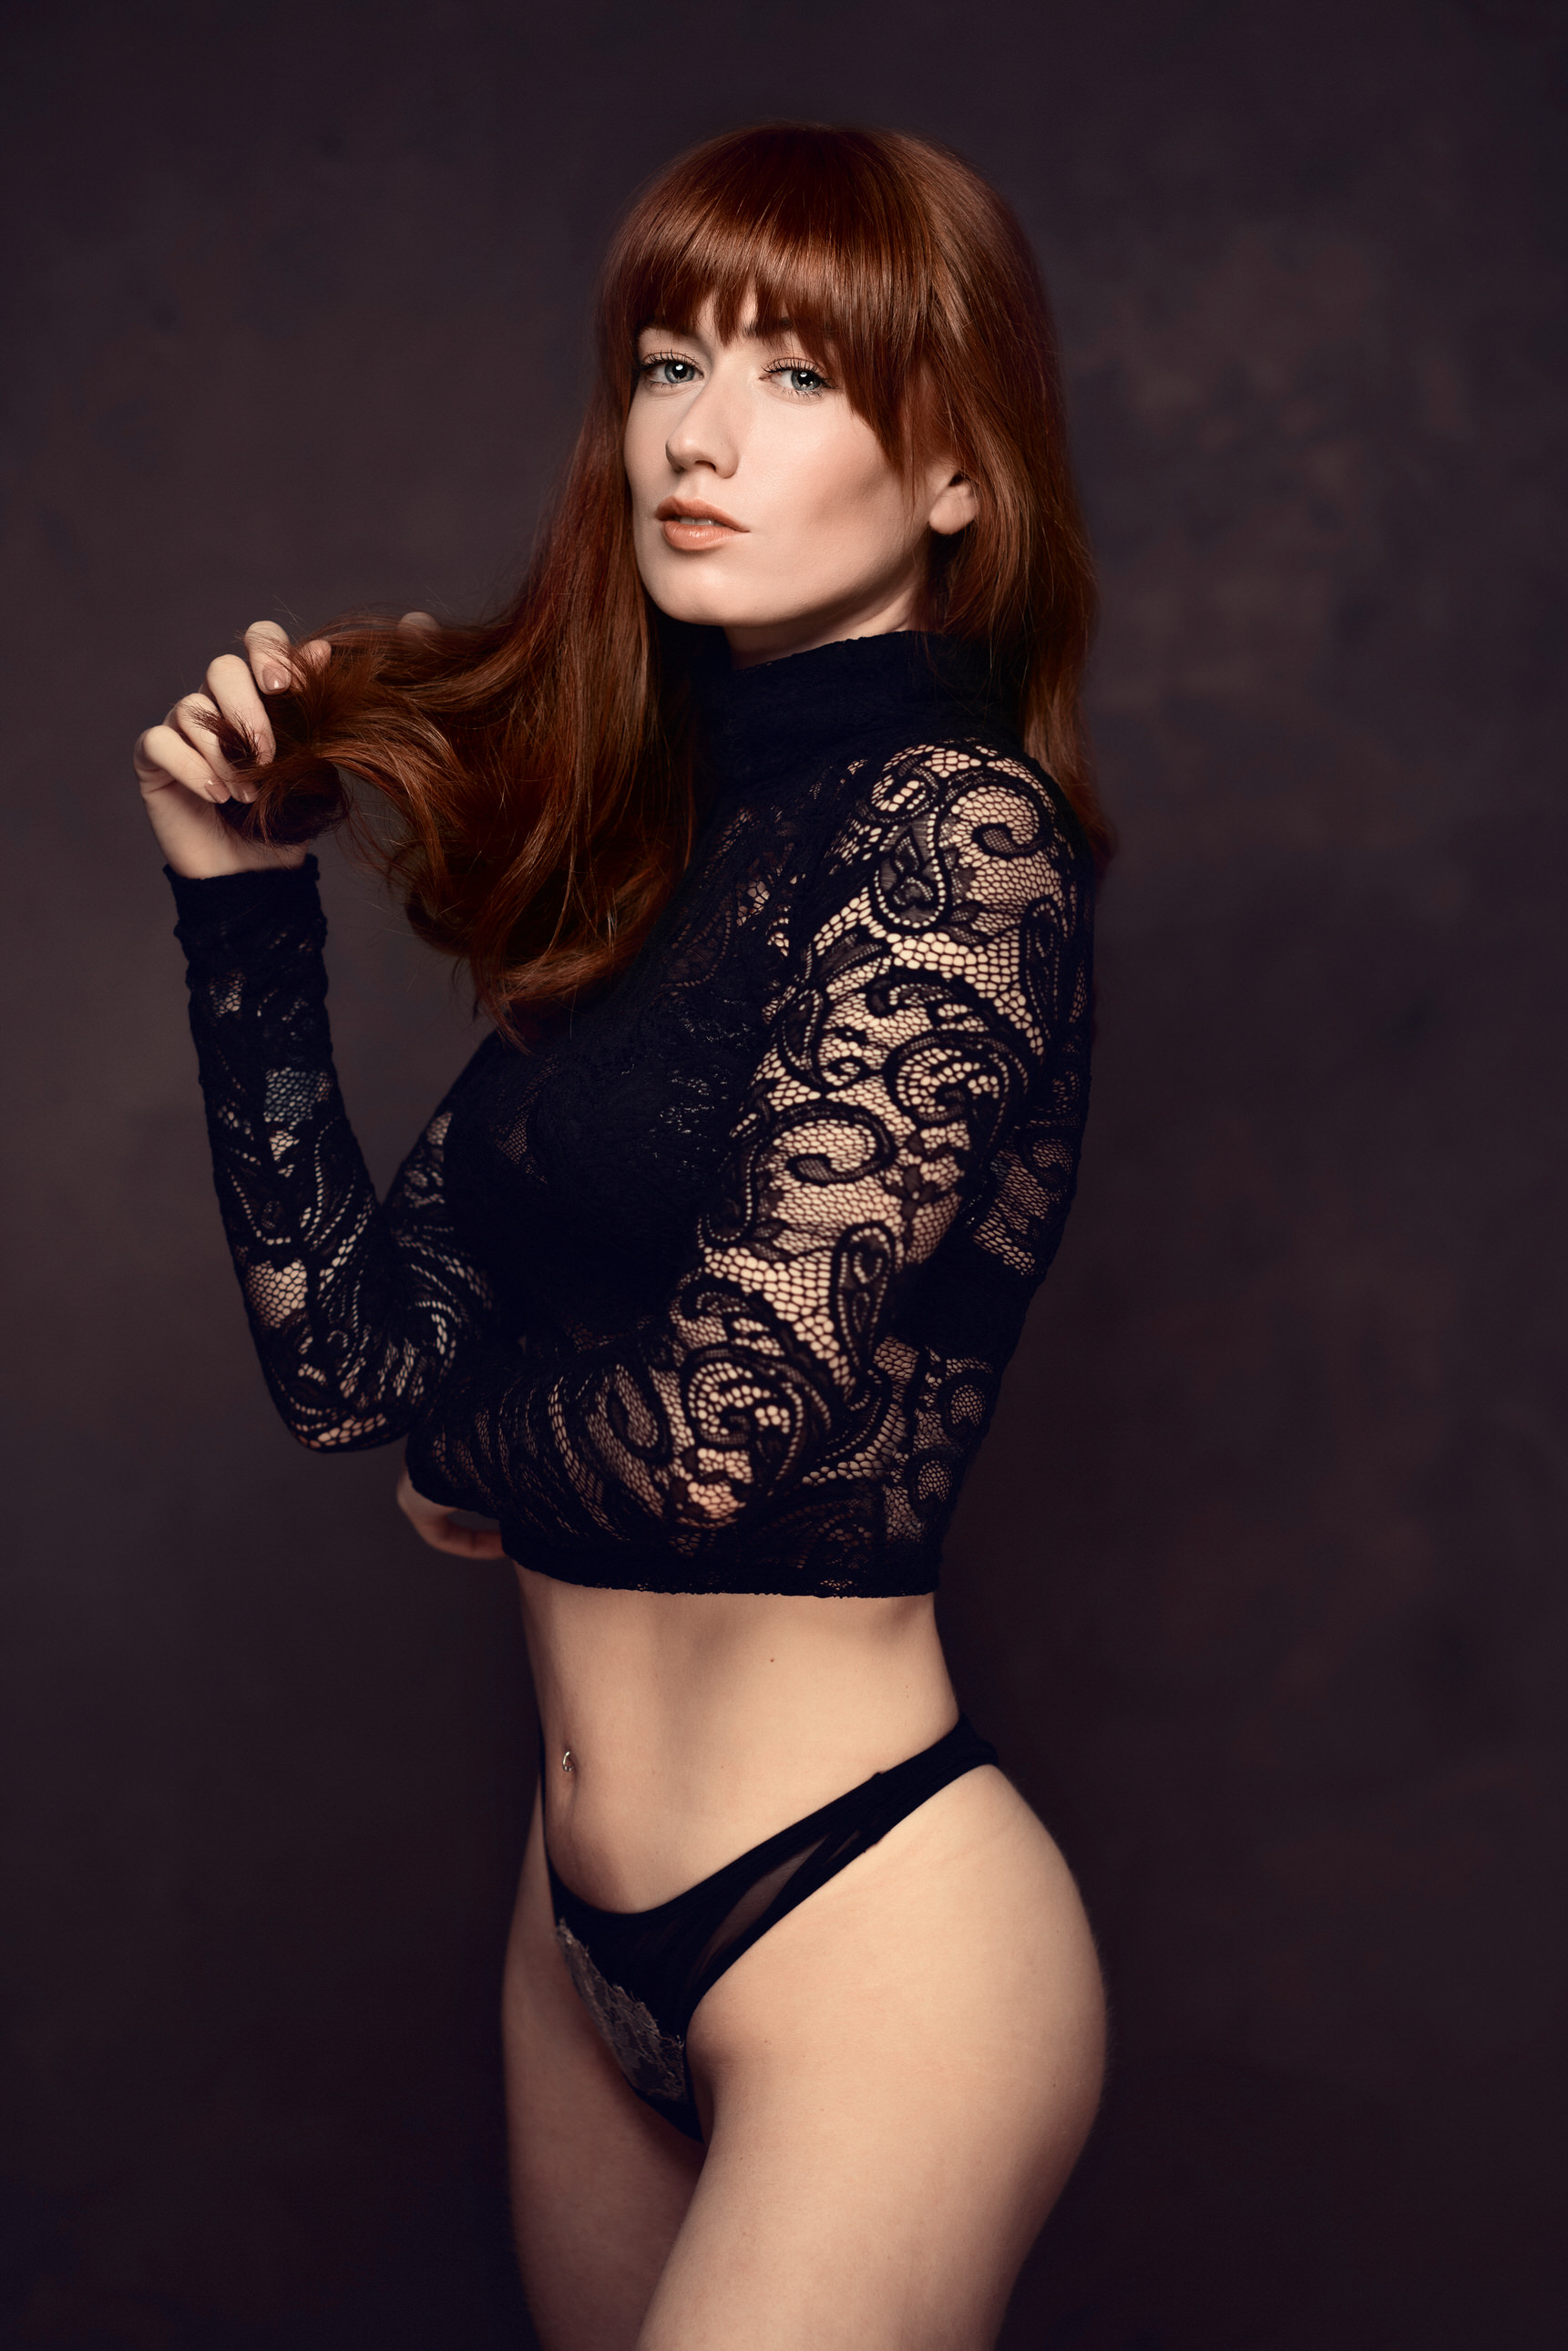 red headed model with black underwear by Boudoir Photographer Lancashire